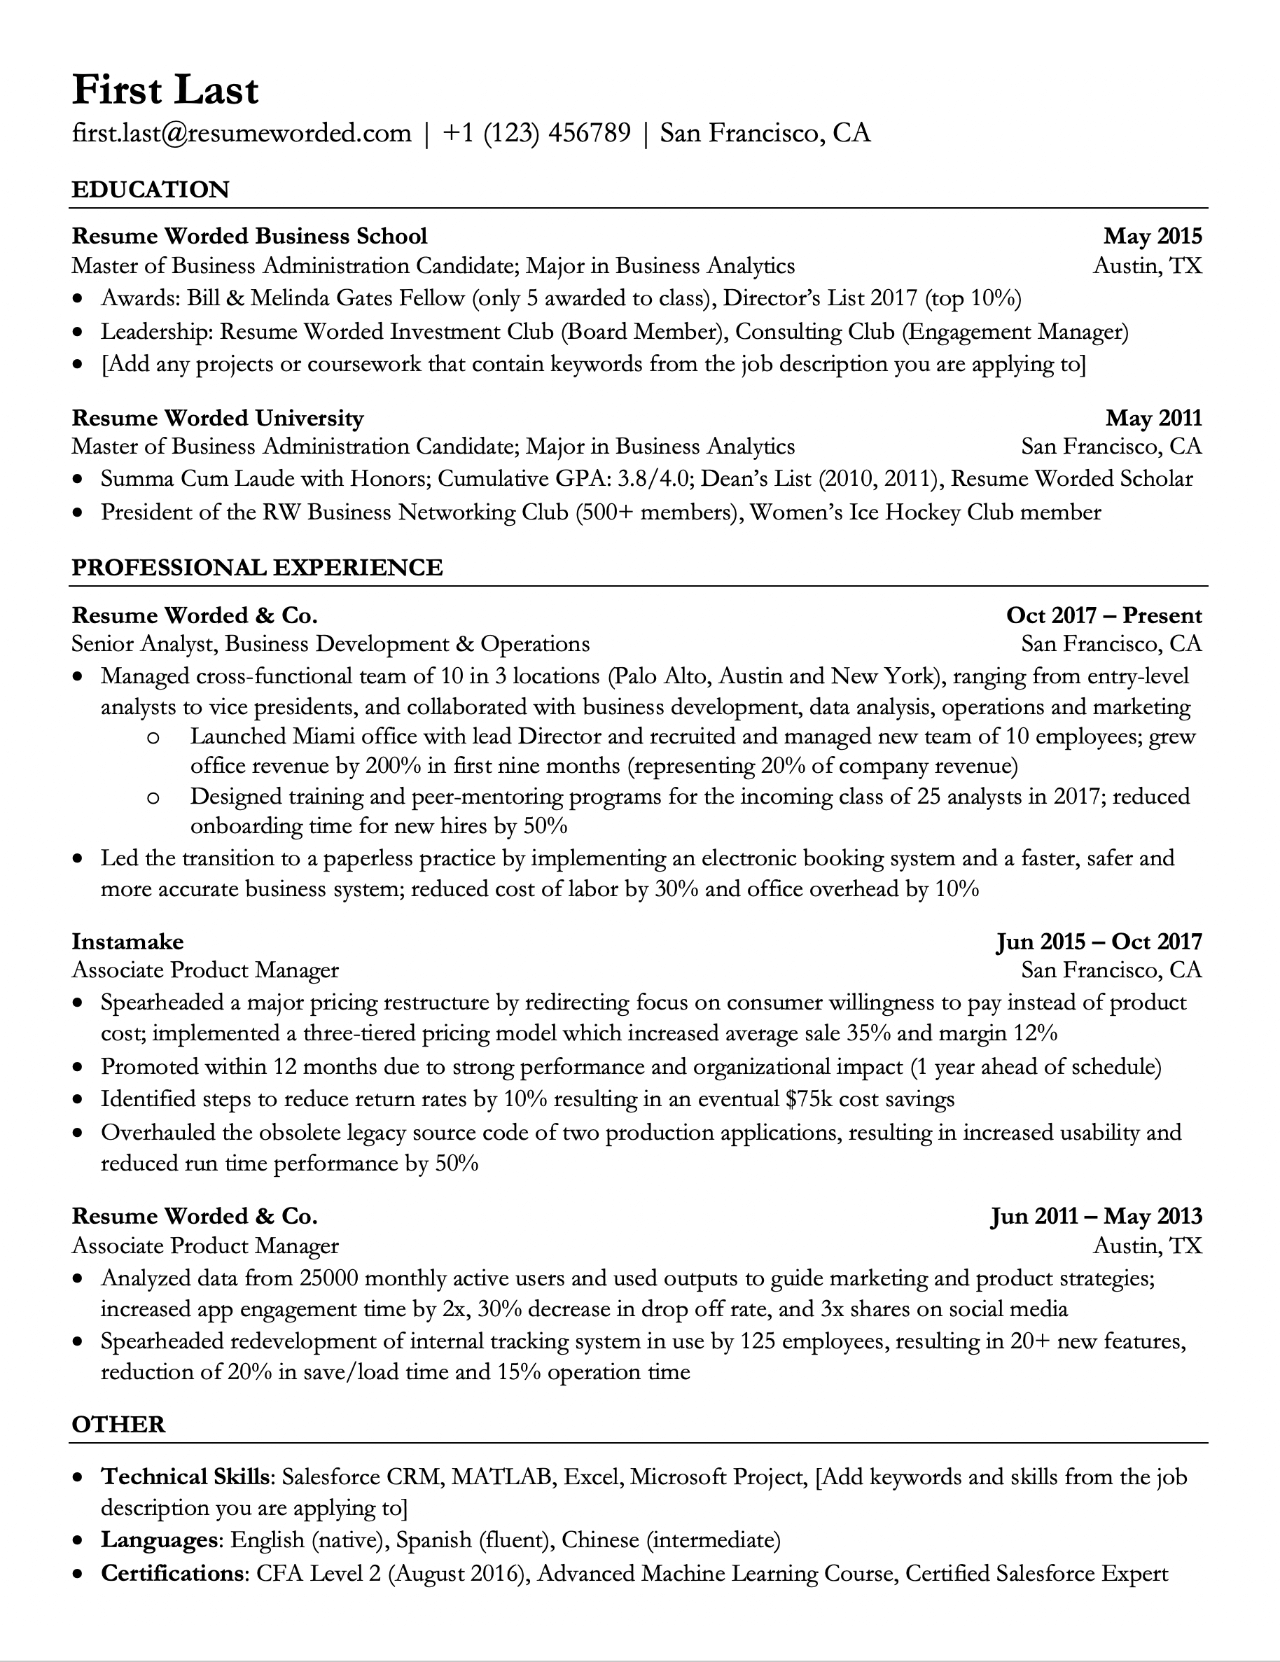 resume format to pass ats